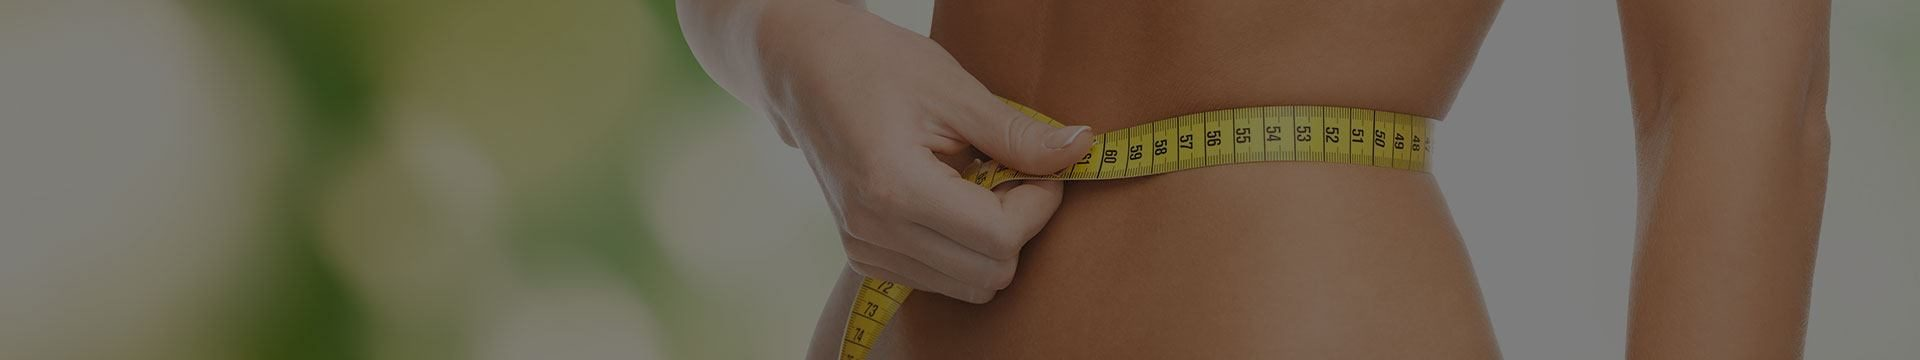 Circumference weight loss measurements Dallas